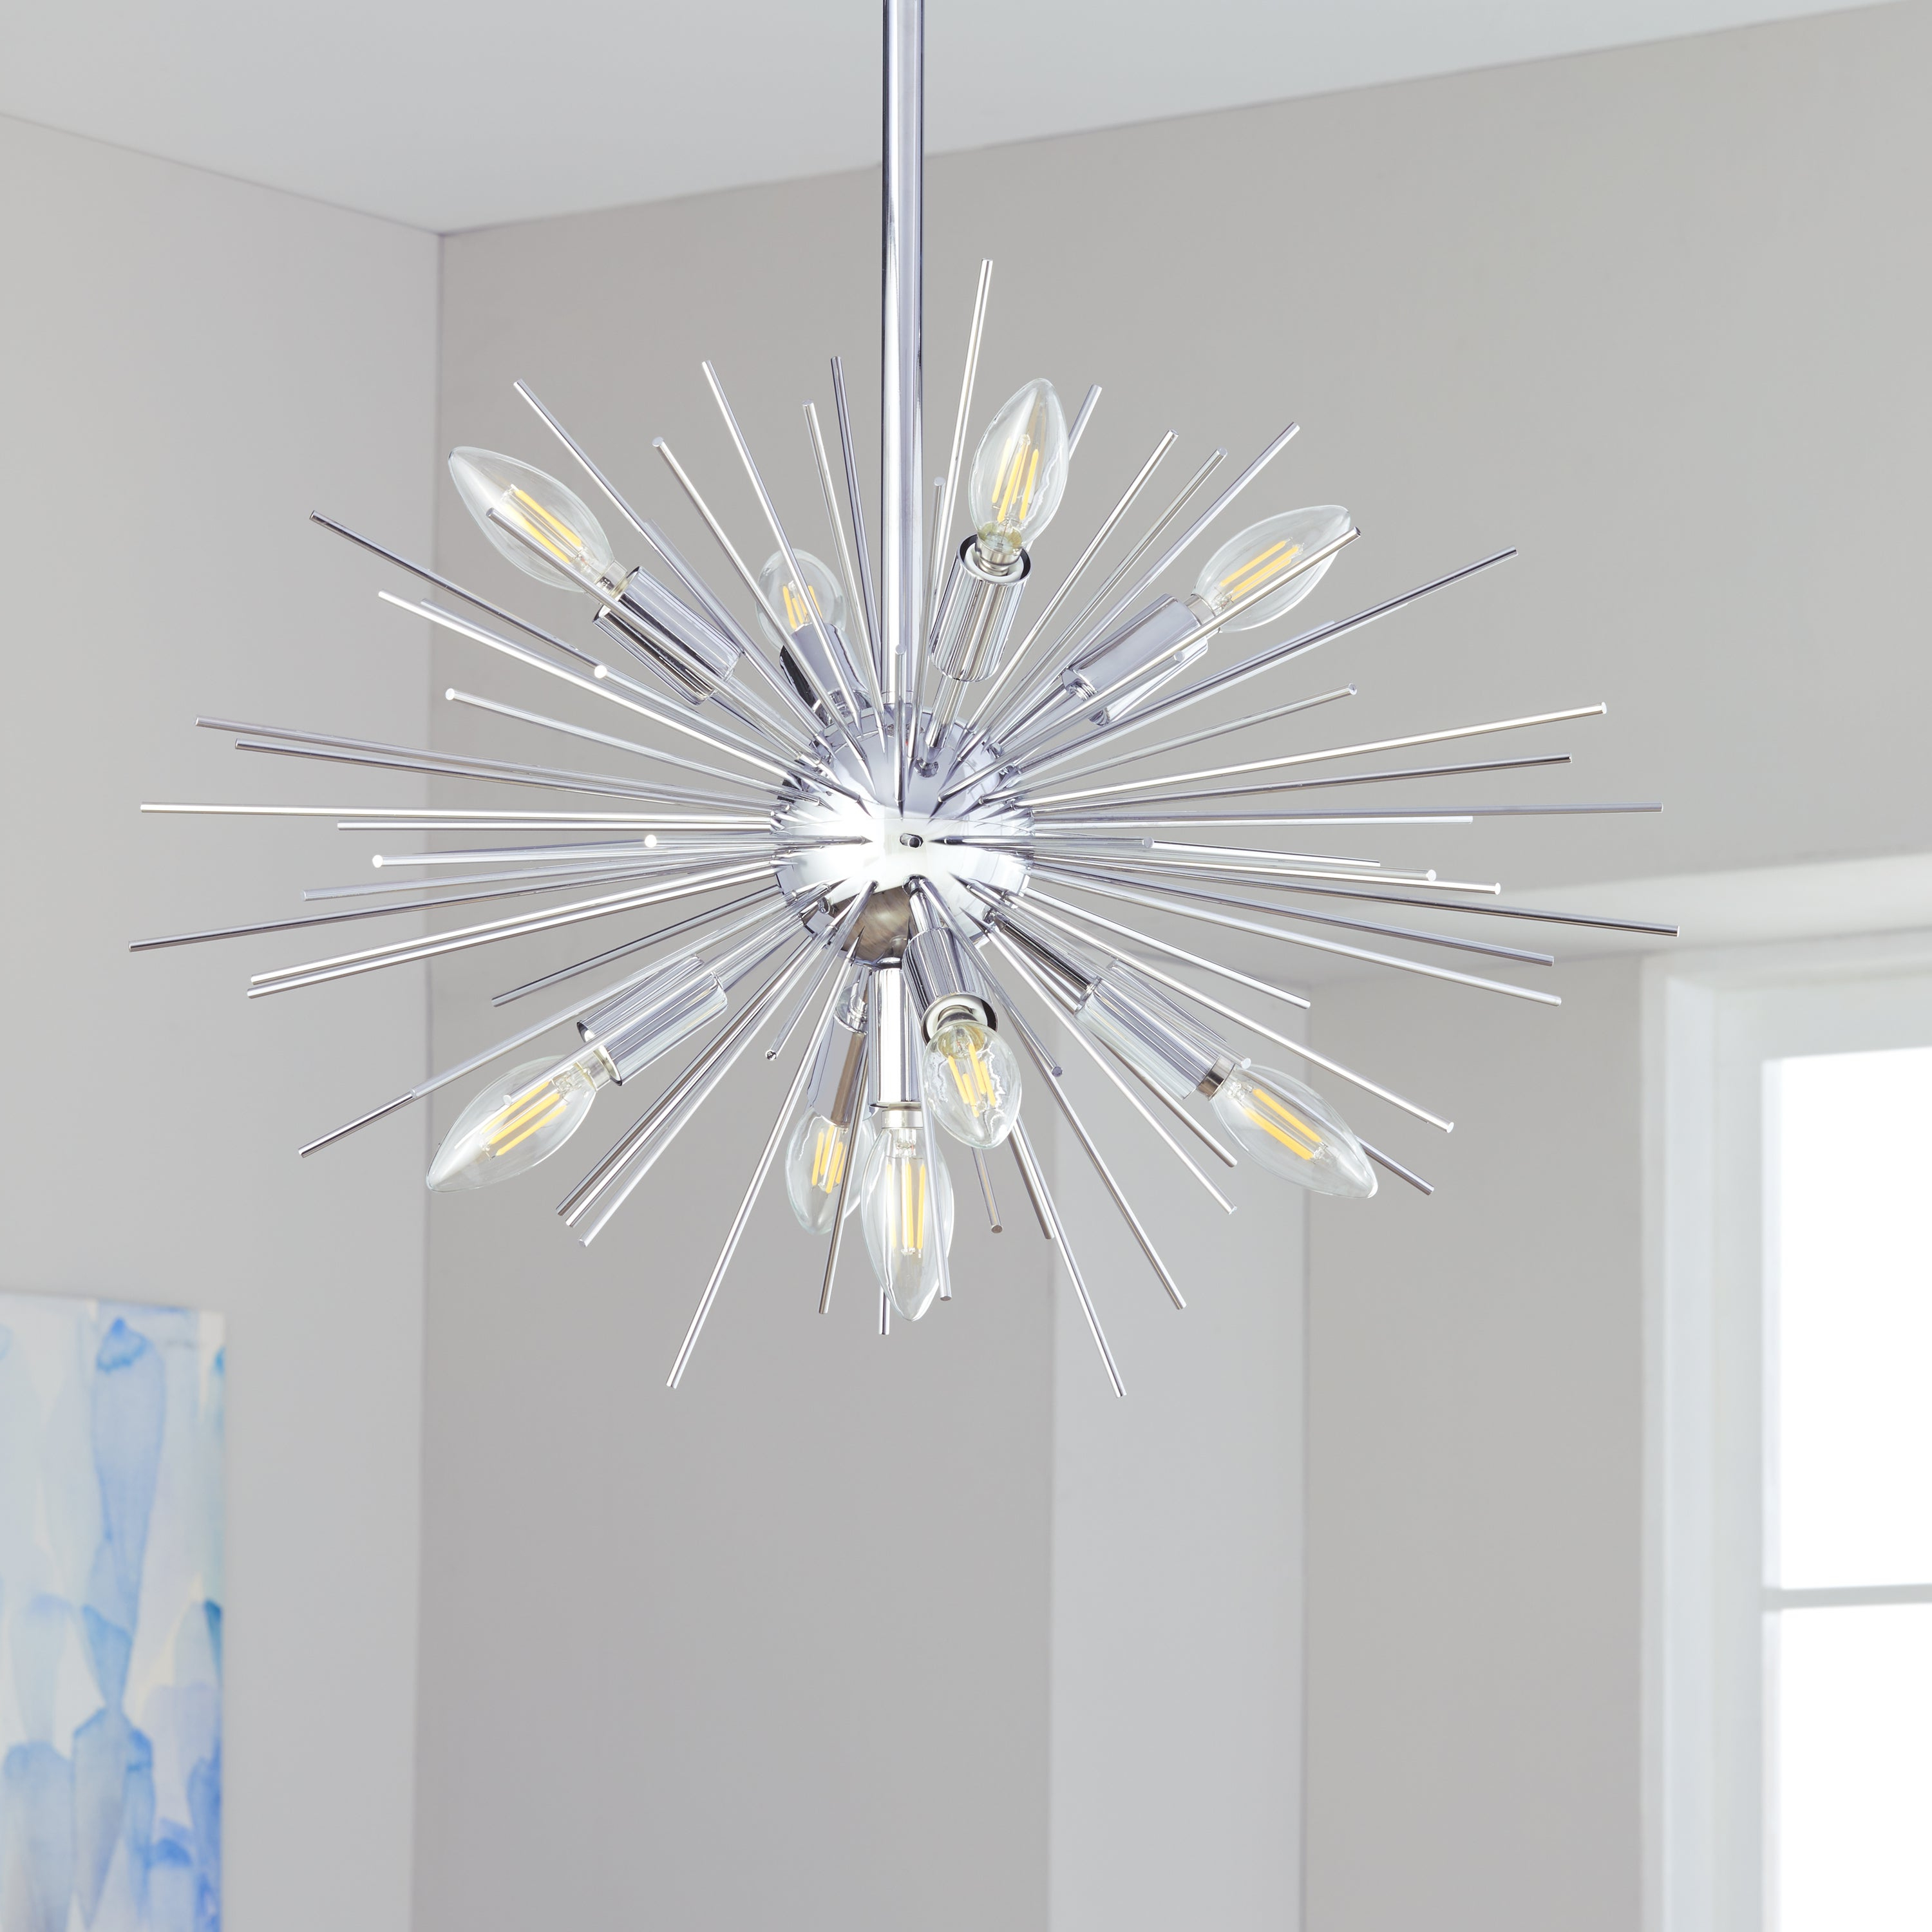 Shop Our Best Lighting & Ceiling Within 2019 Defreitas 18 Light Sputnik Chandeliers (View 19 of 20)